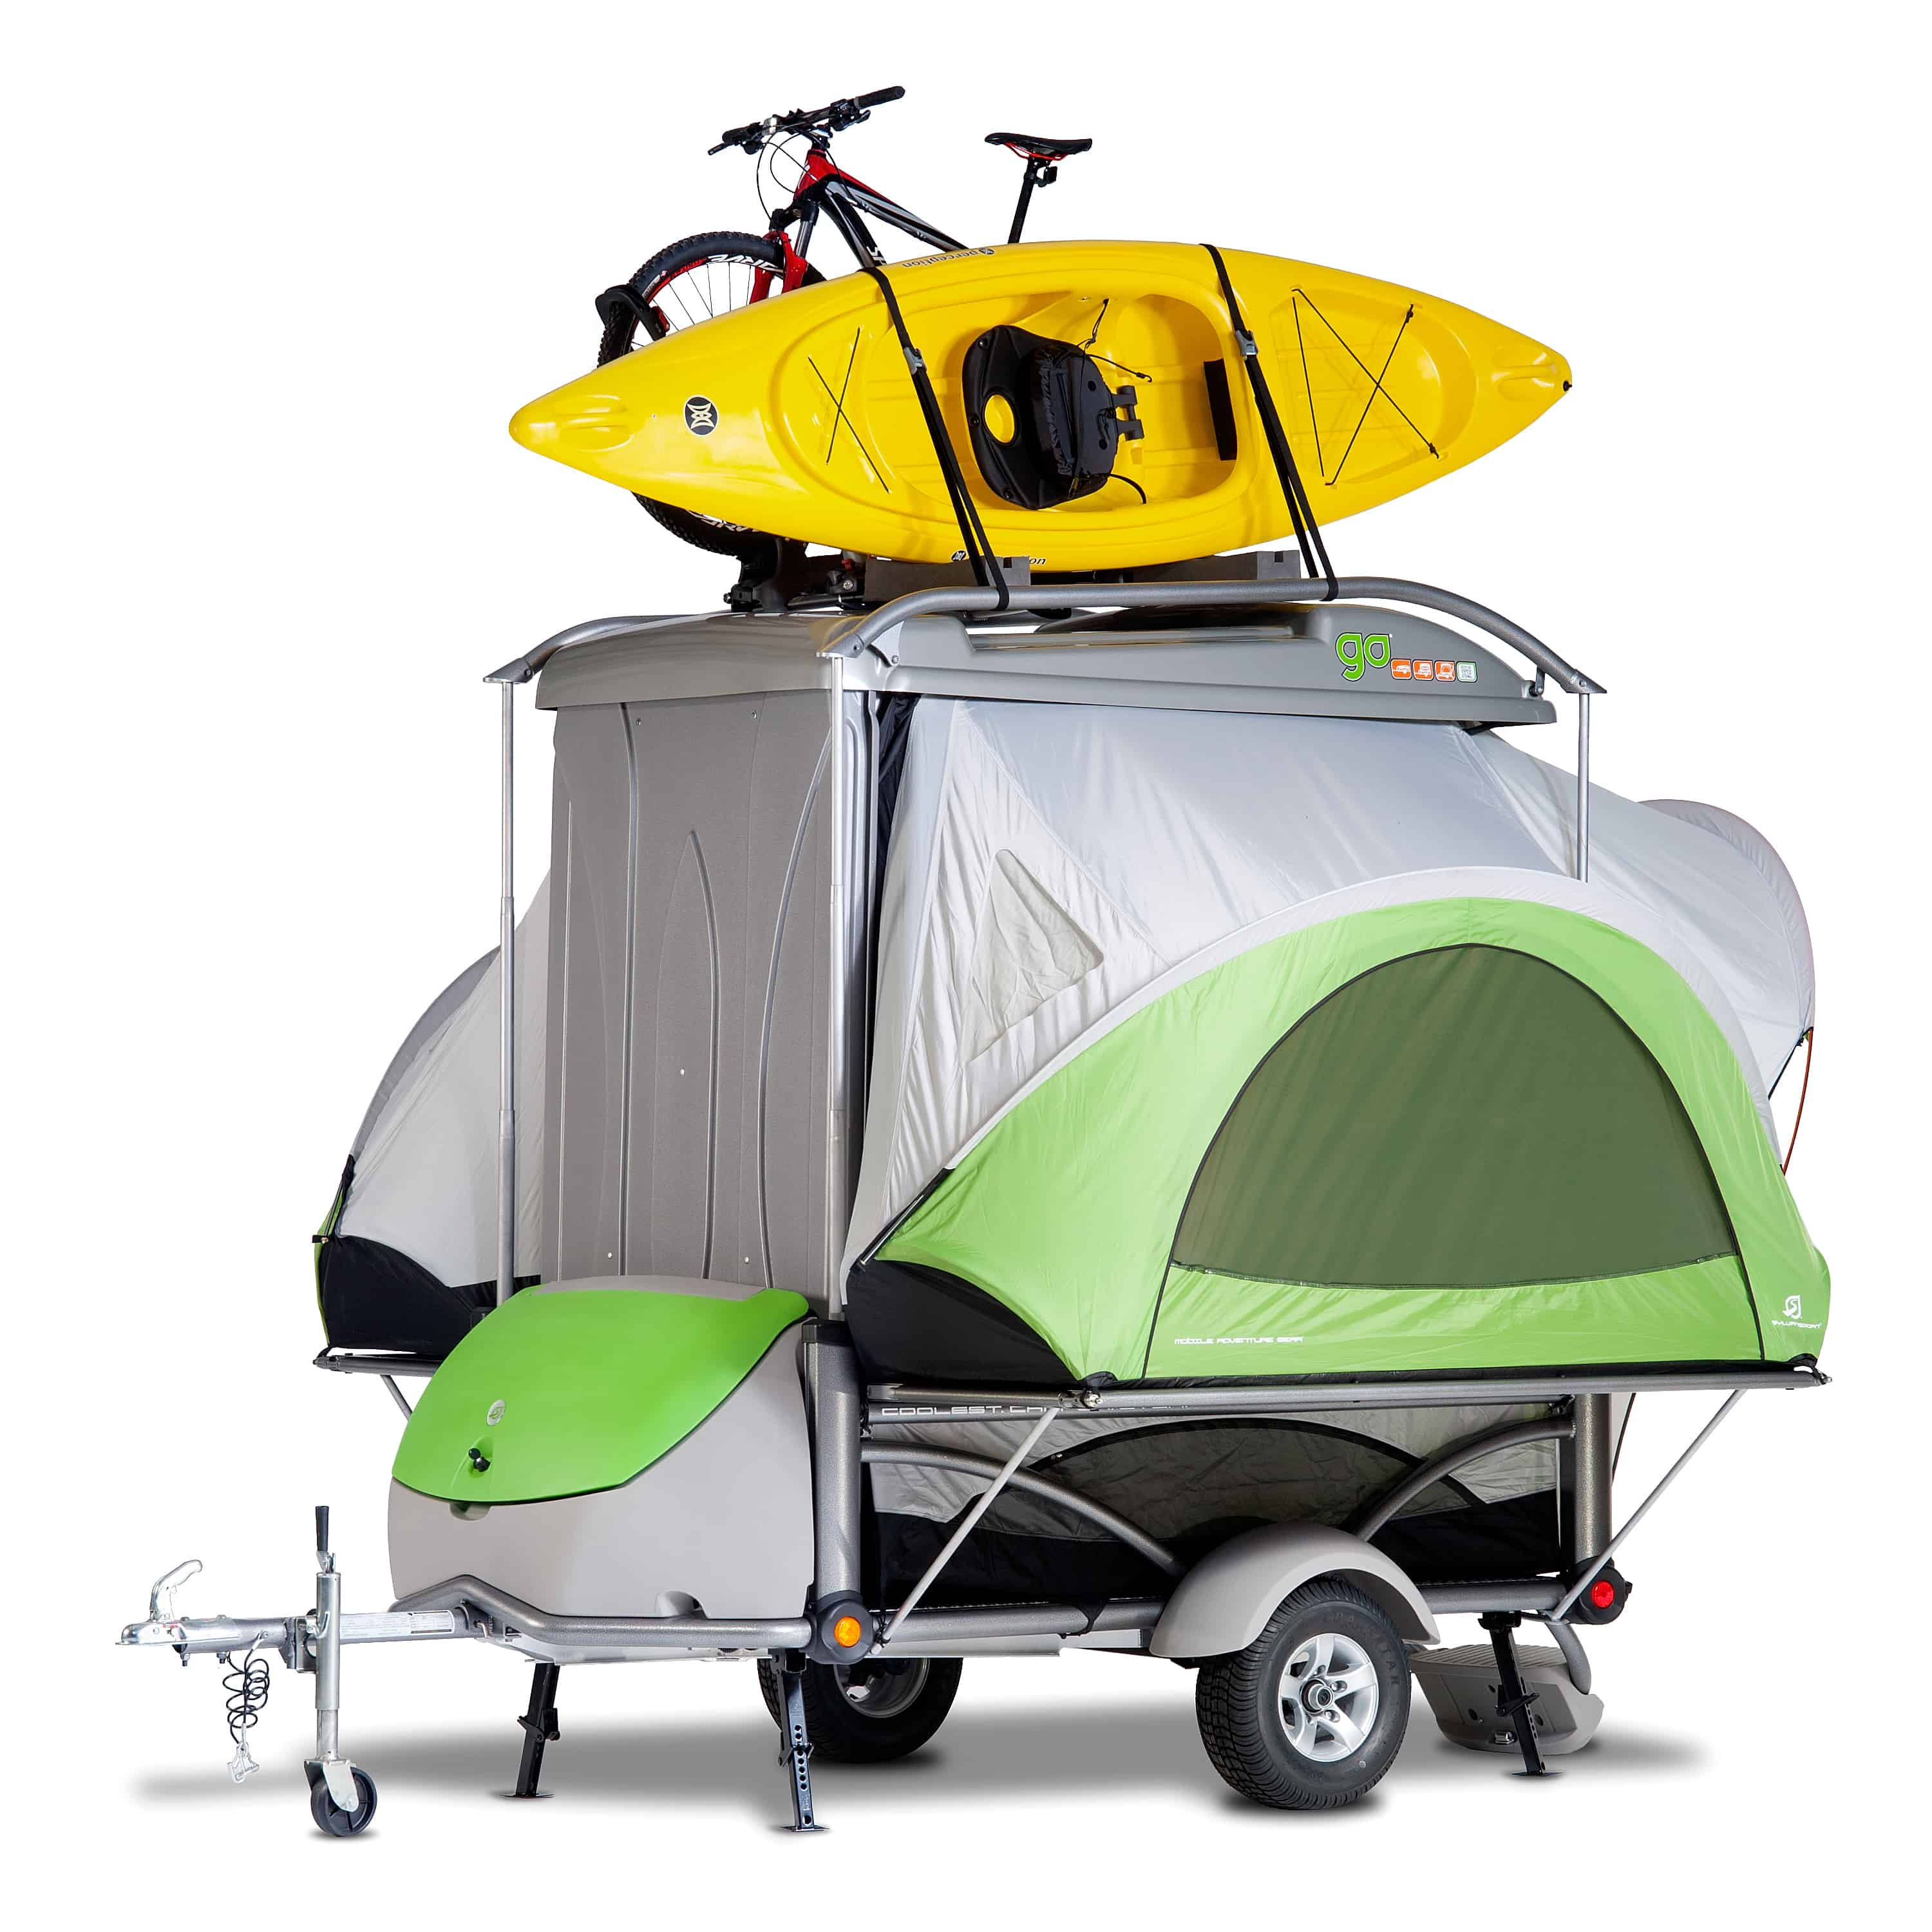 This is a great pop-up camper if versatility is the main issue